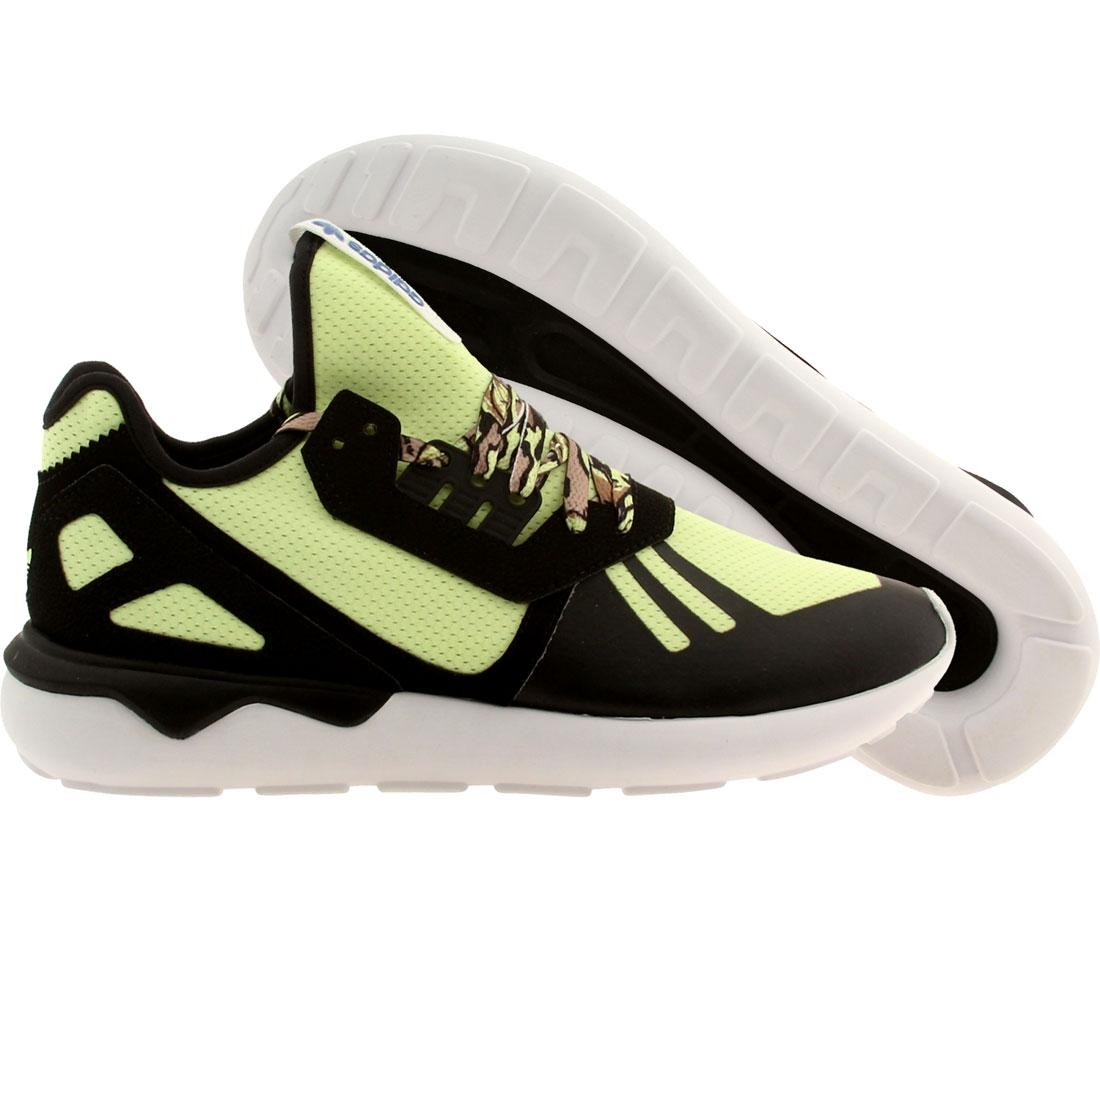 【海外限定】アディダス メンズ靴 靴 【 ADIDAS MEN TUBULAR RUNNER BLACK LTFLYE FTWWHT 】